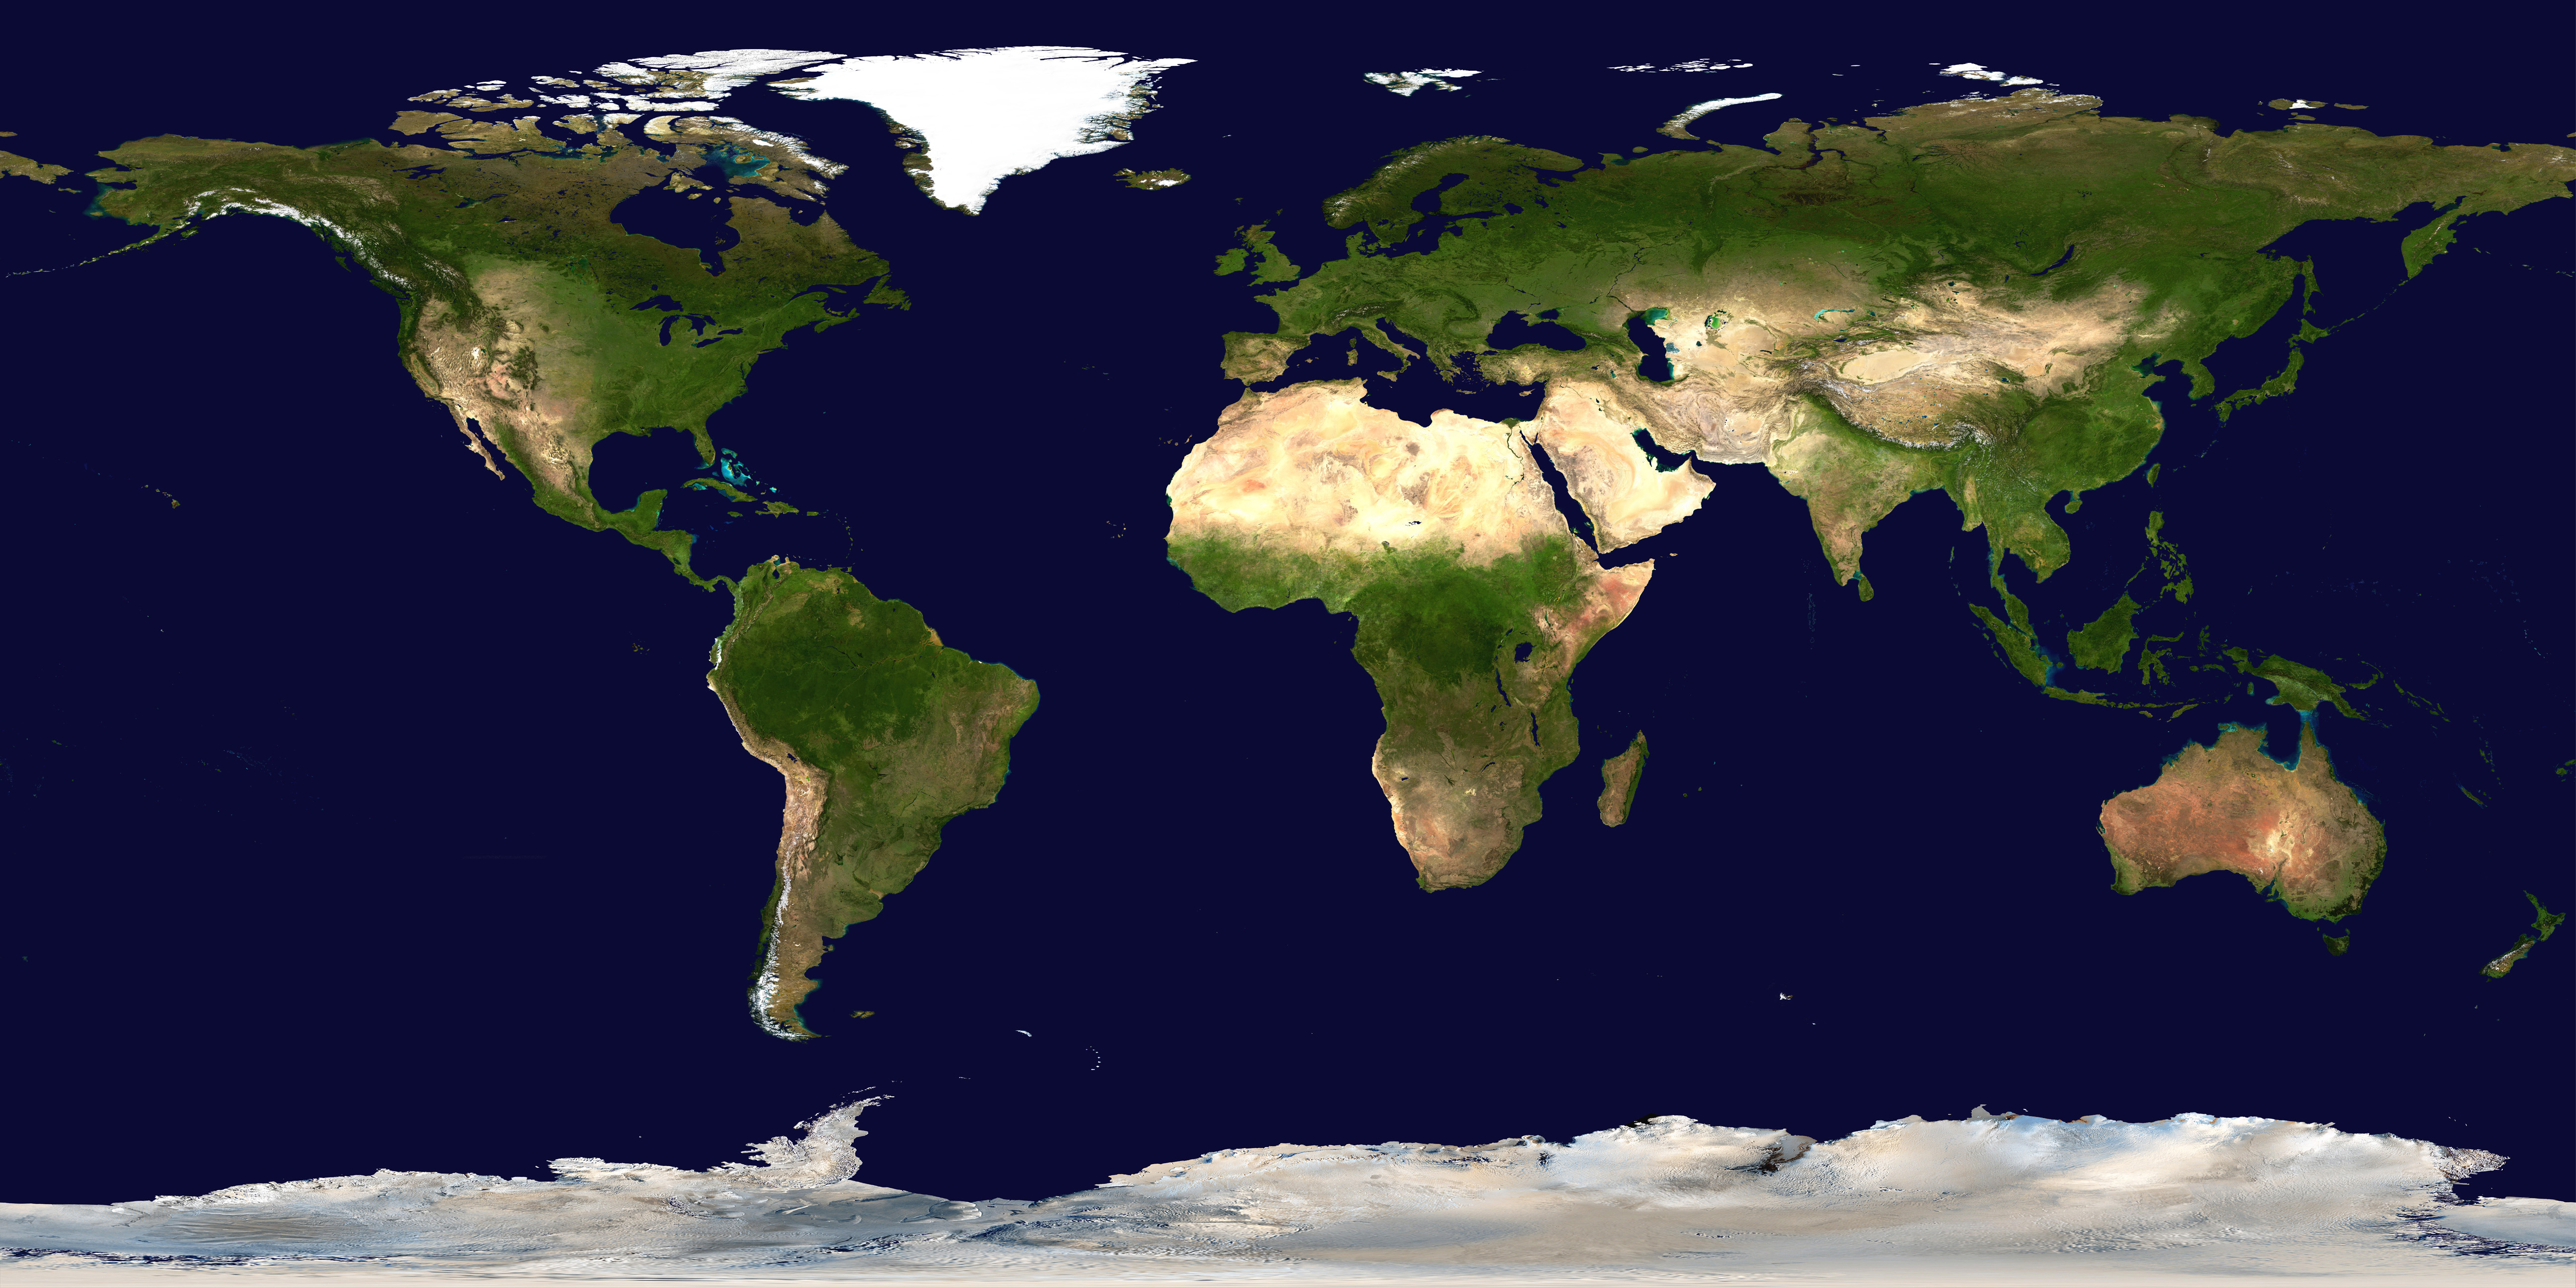 large_scale_satellite_map_of_the_World